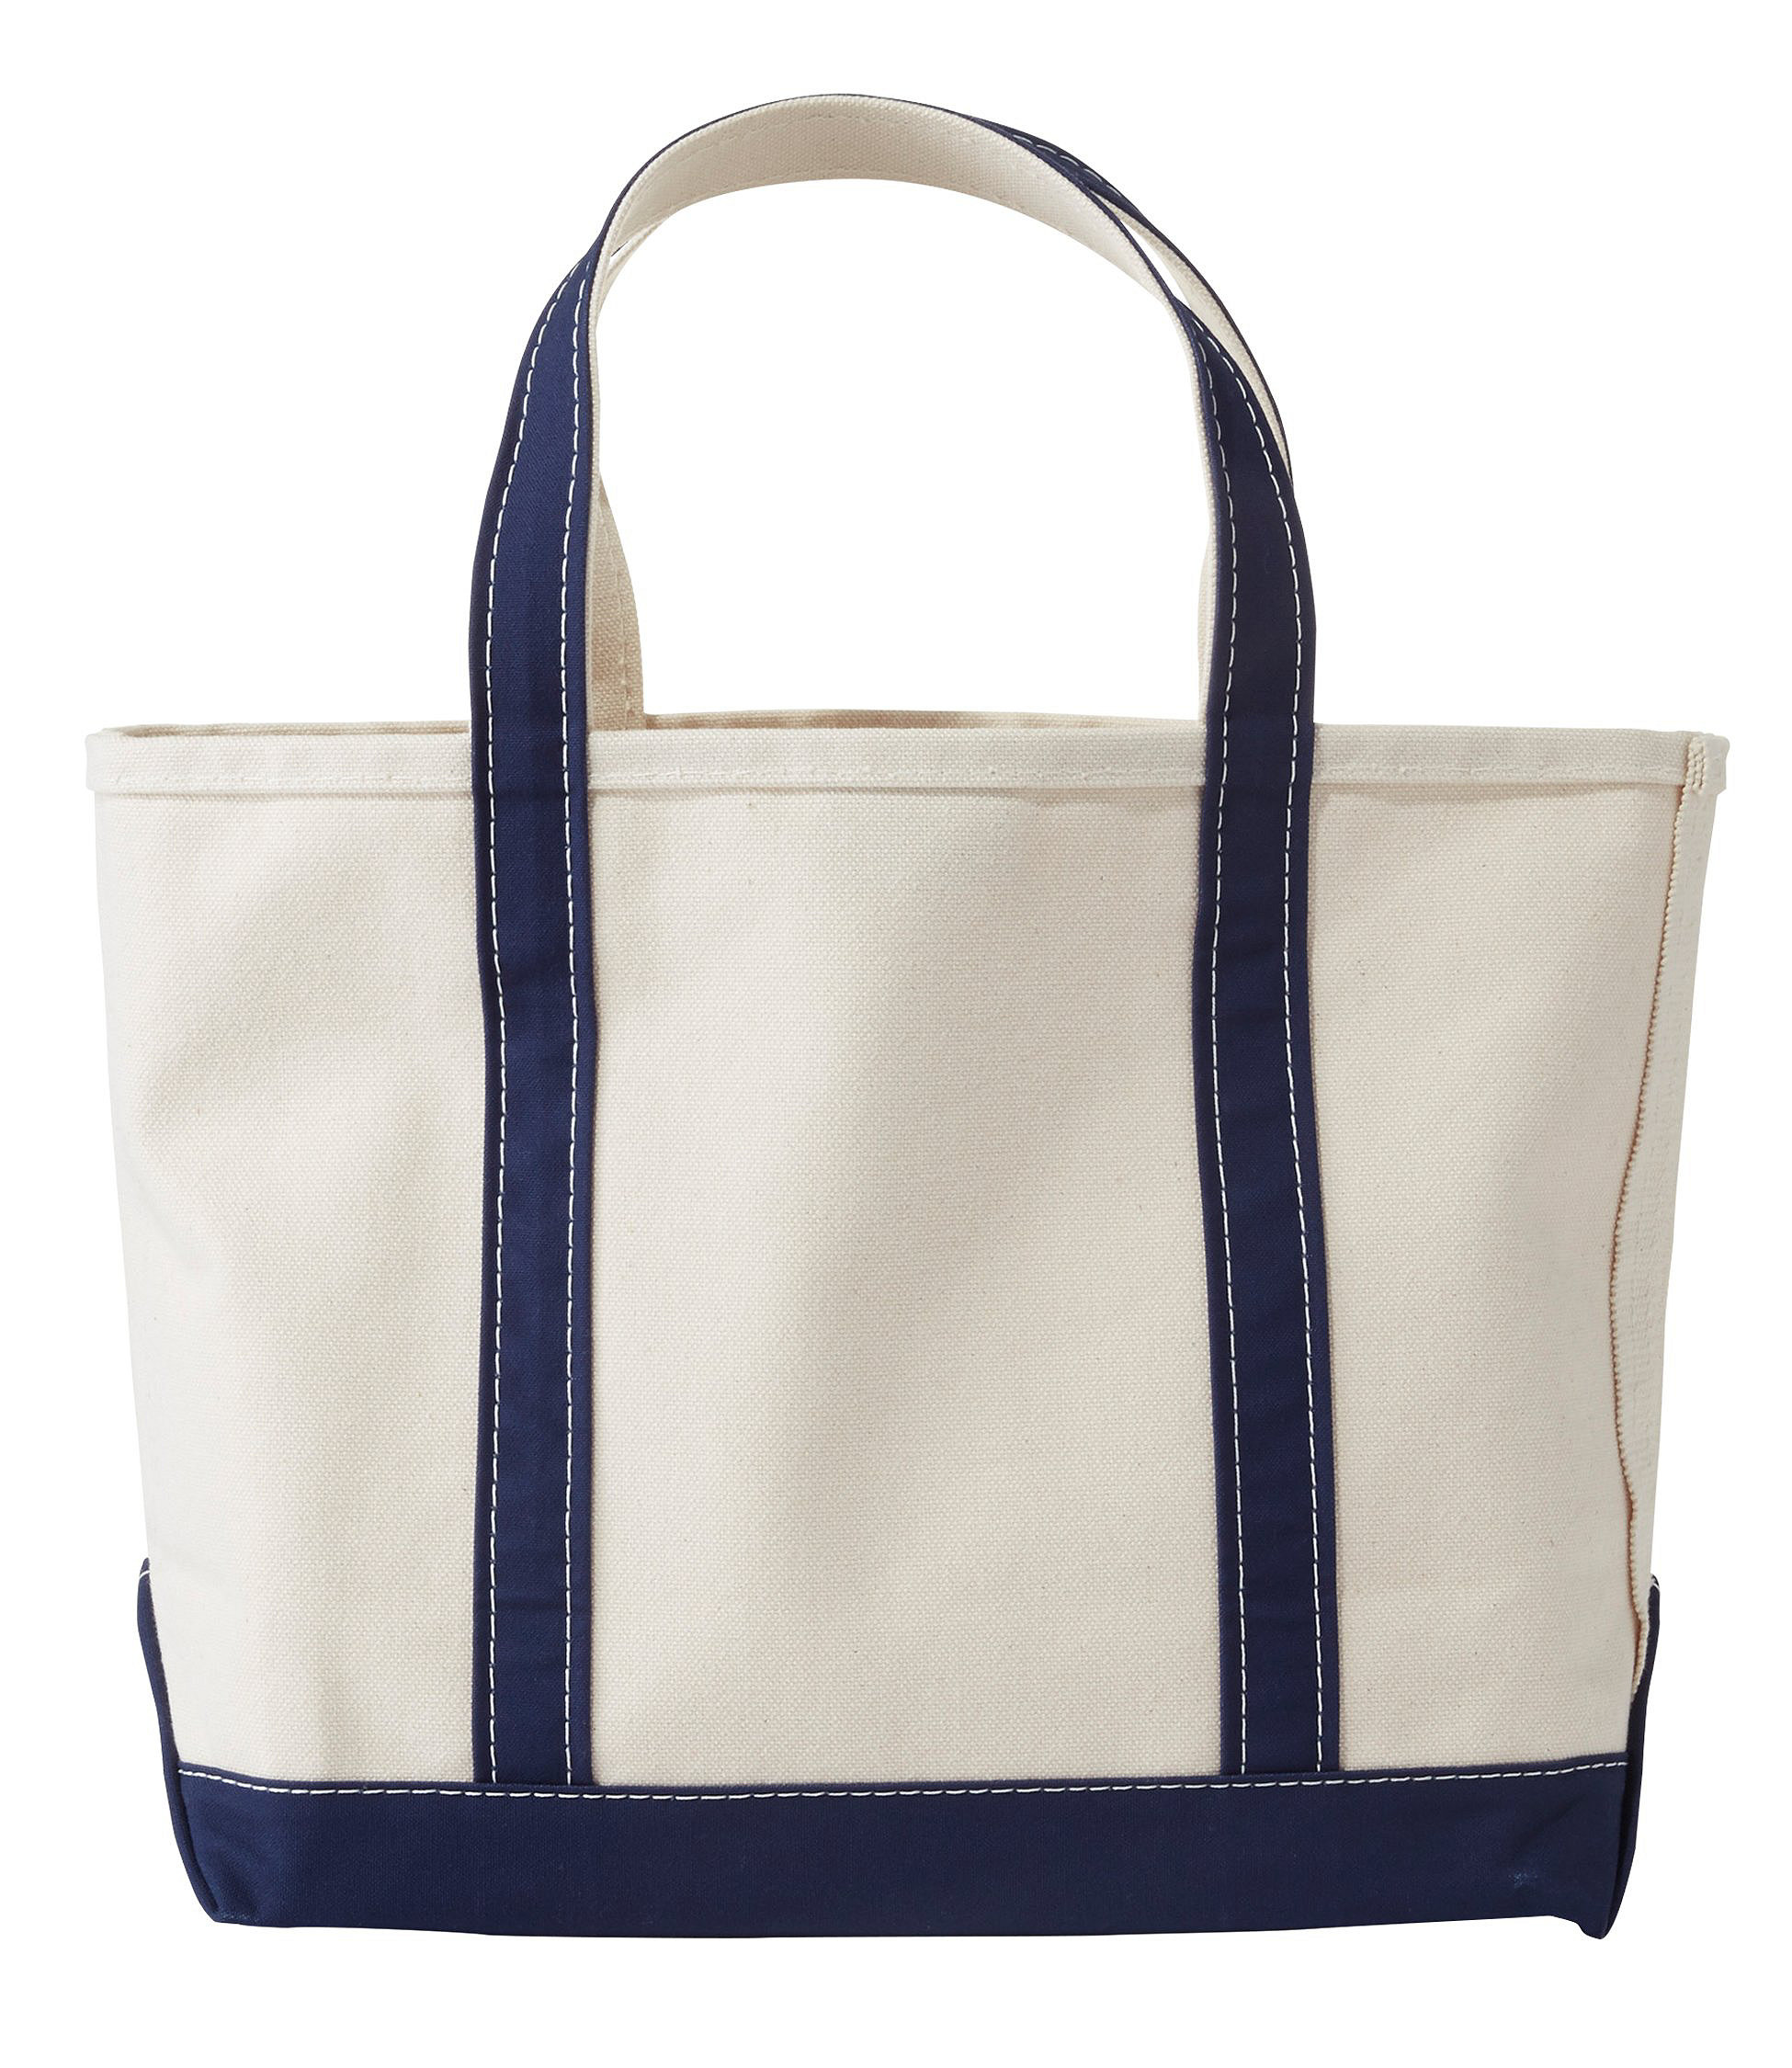 Boat and Tote Bag, Open-Top | Free Shipping at L.L.Bean